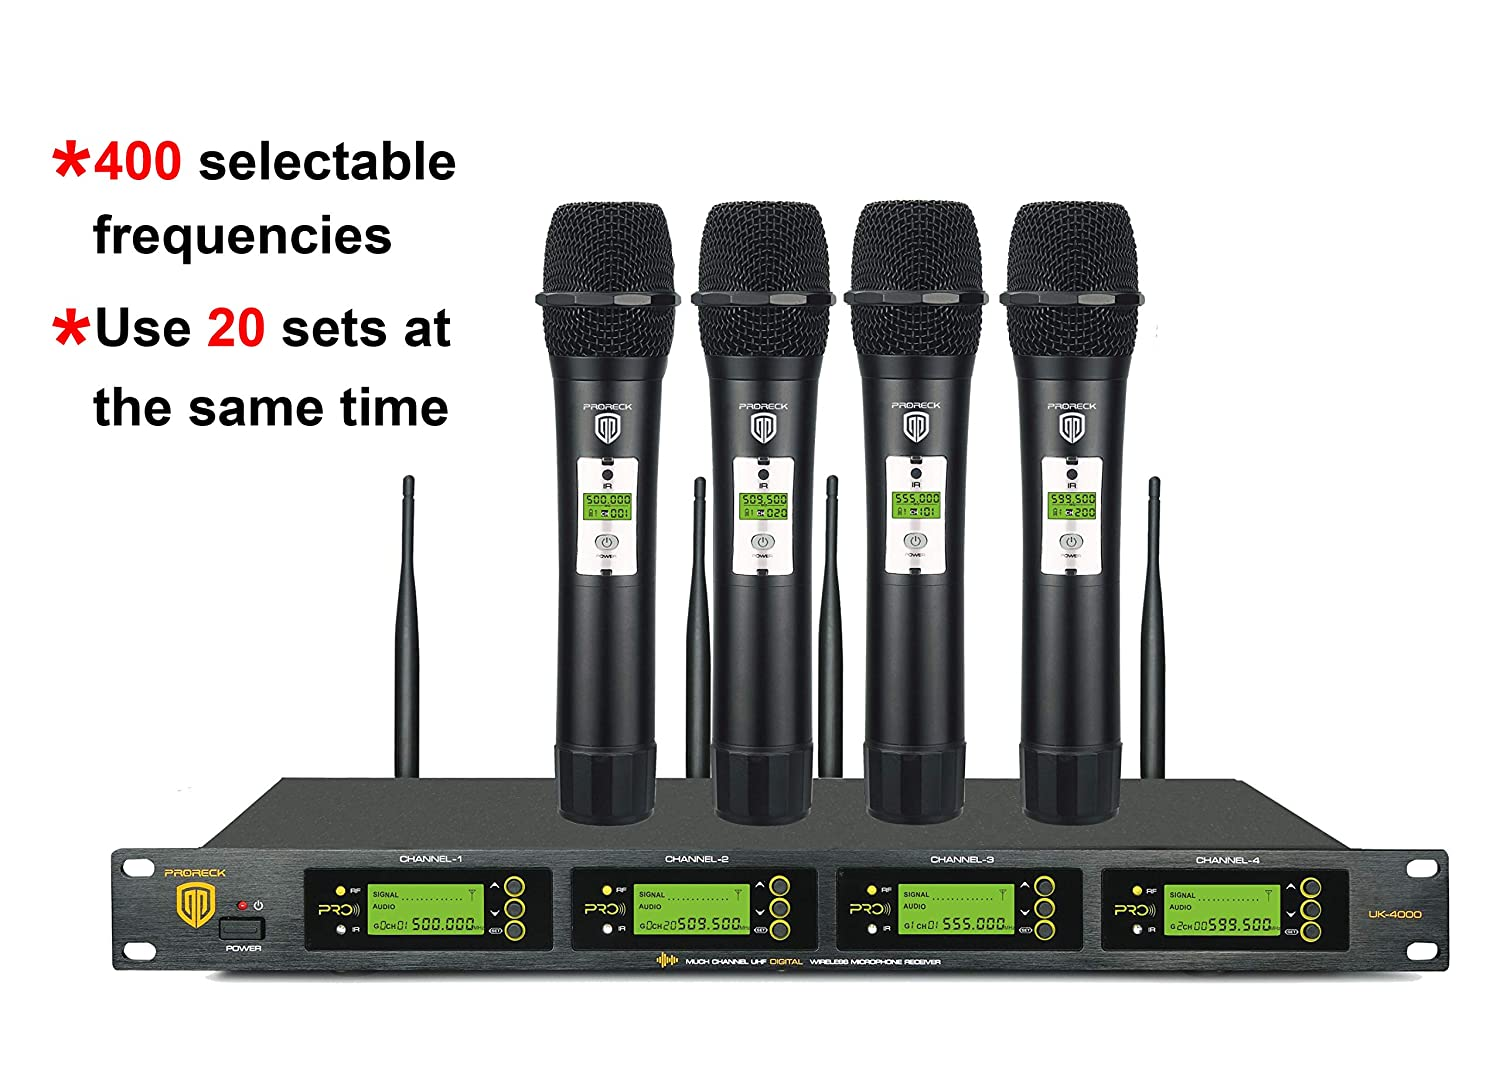 PRORECK UK-4000 UHF 4 Channel Wireless Microphone System with Four Handheld  Microphone with FCC Certification, Perfect for